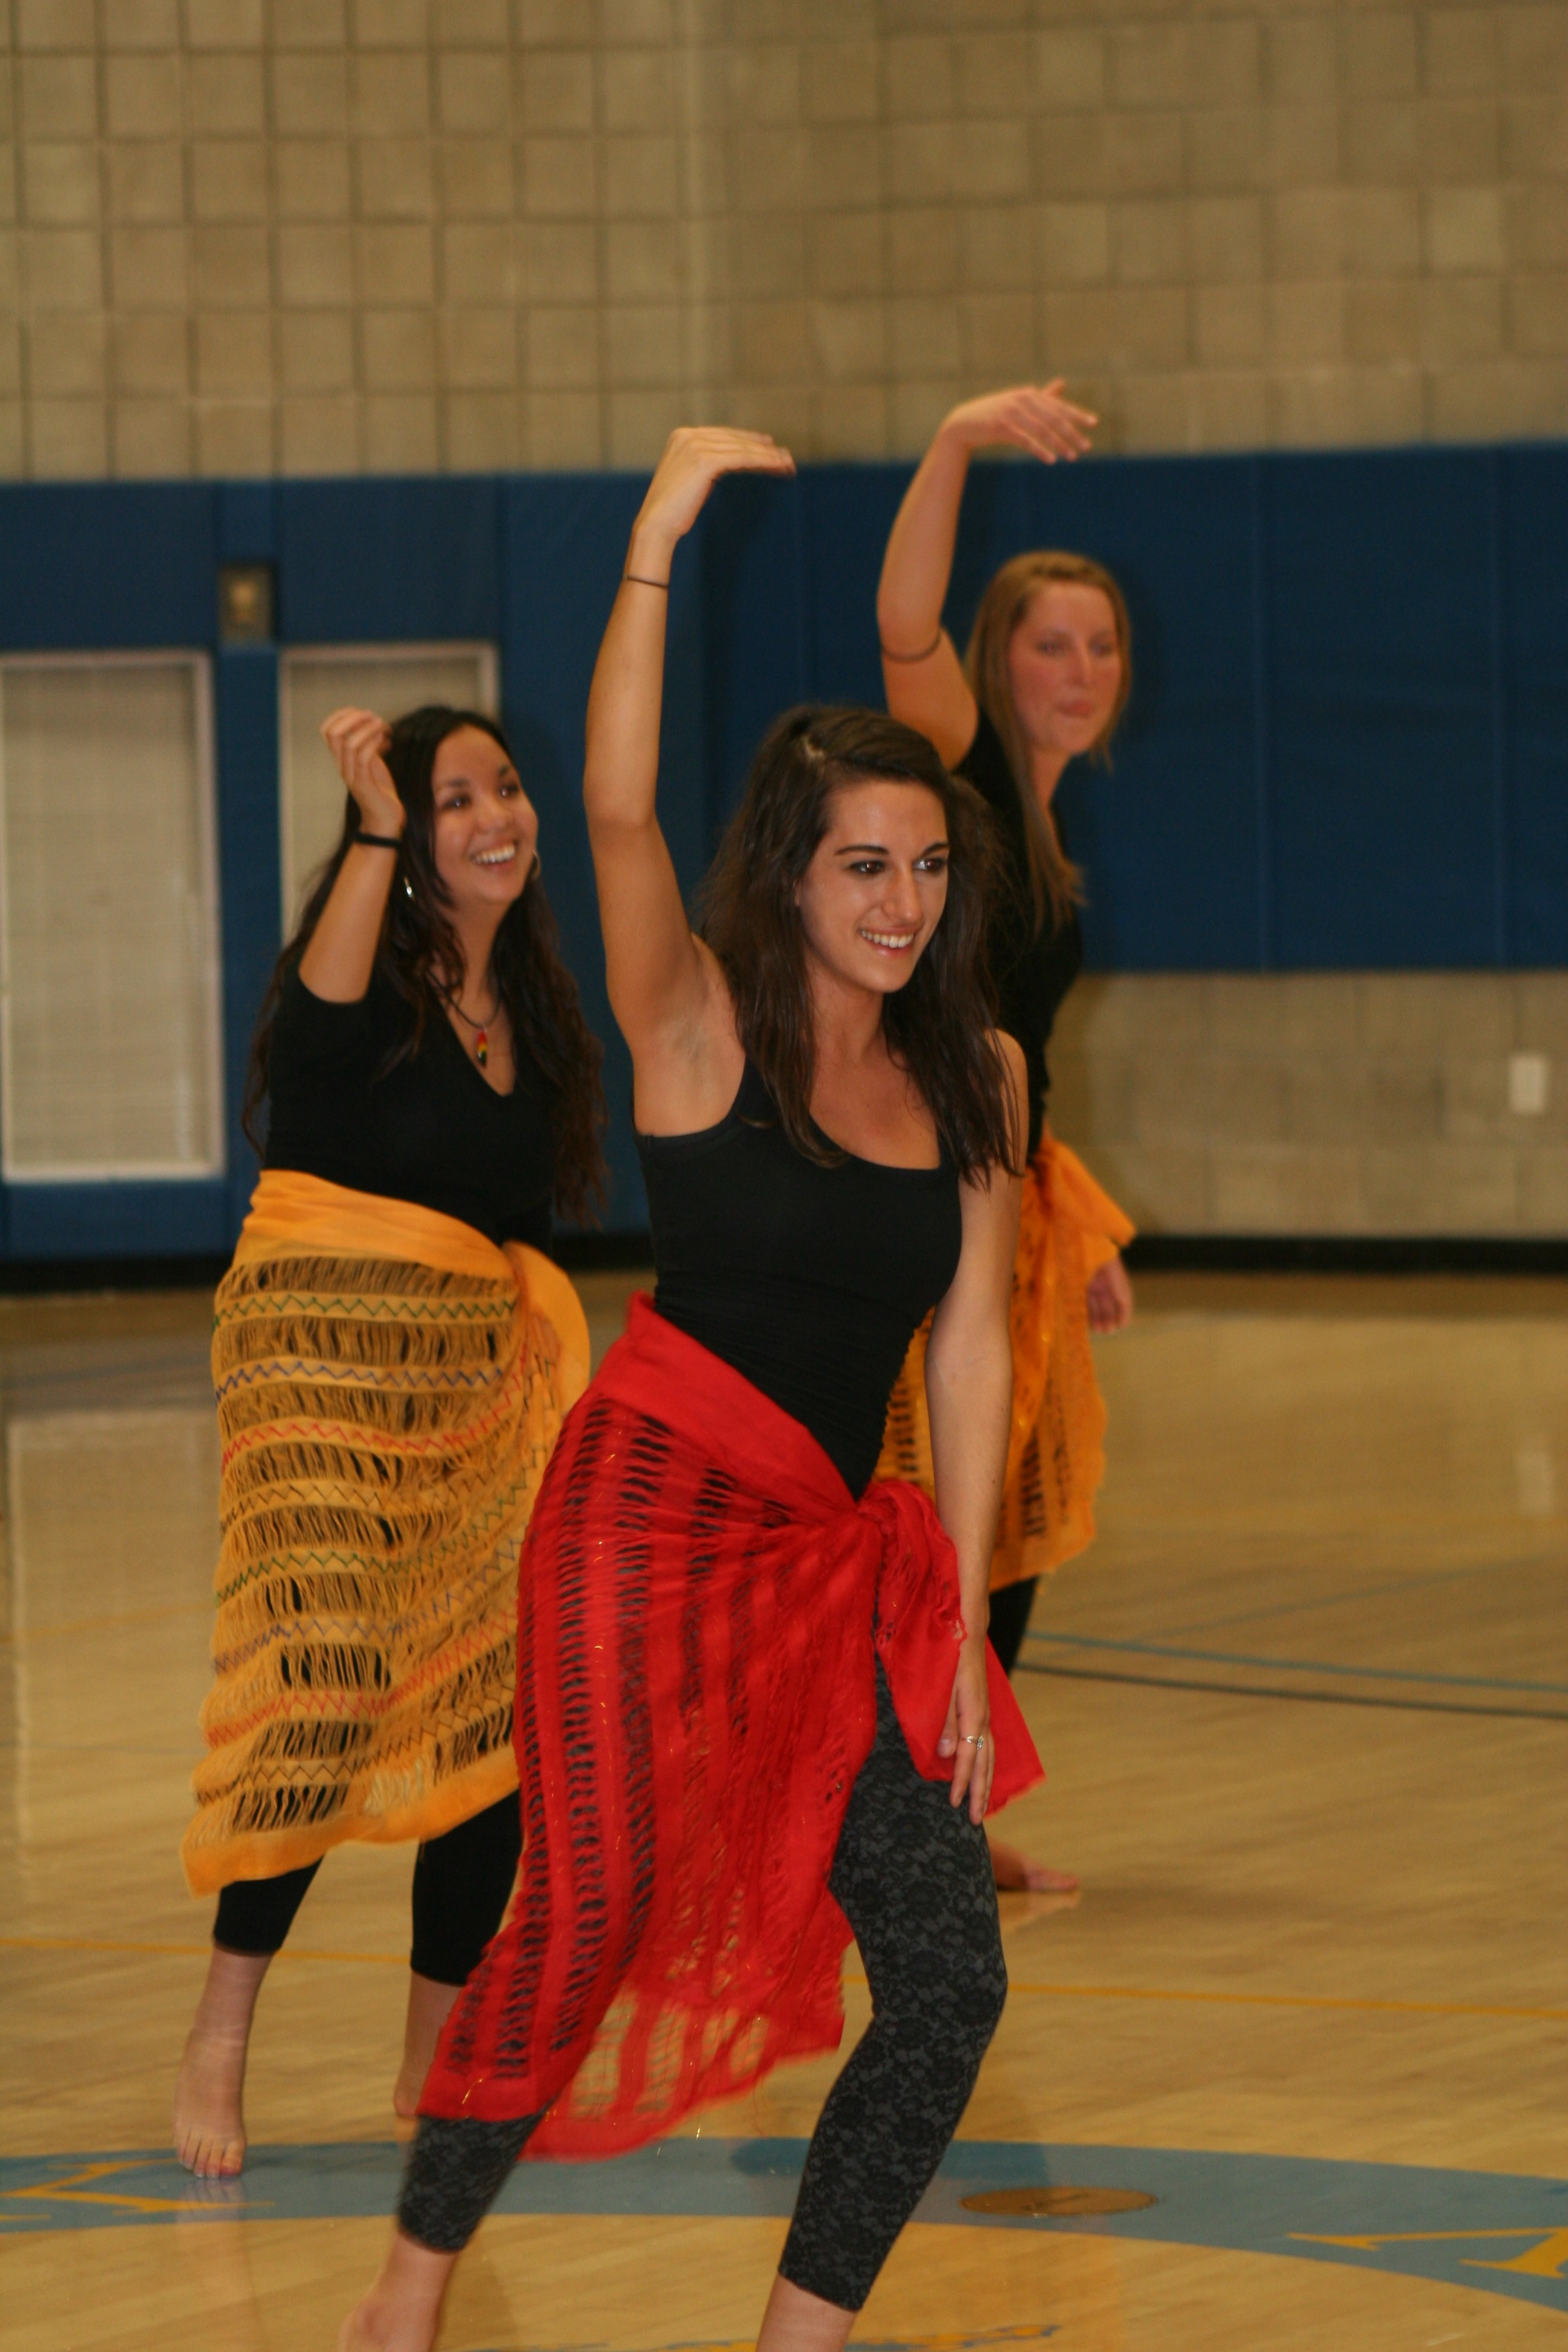 Students dance to the rhythms.